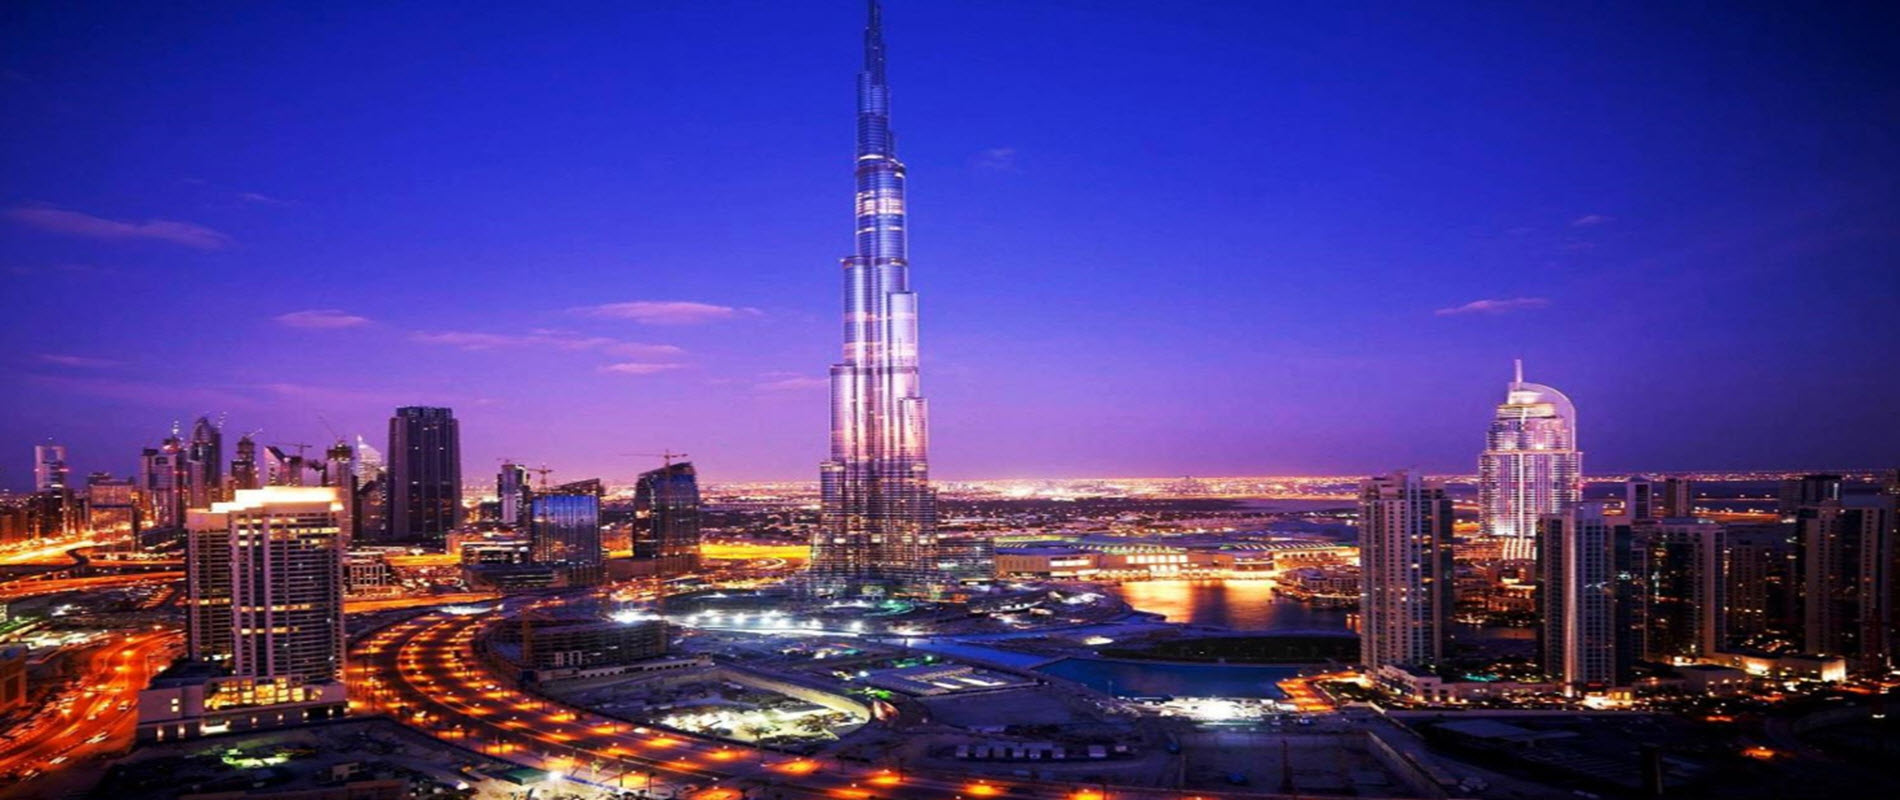 Burj Khalifa - At The Top - 124 Floor